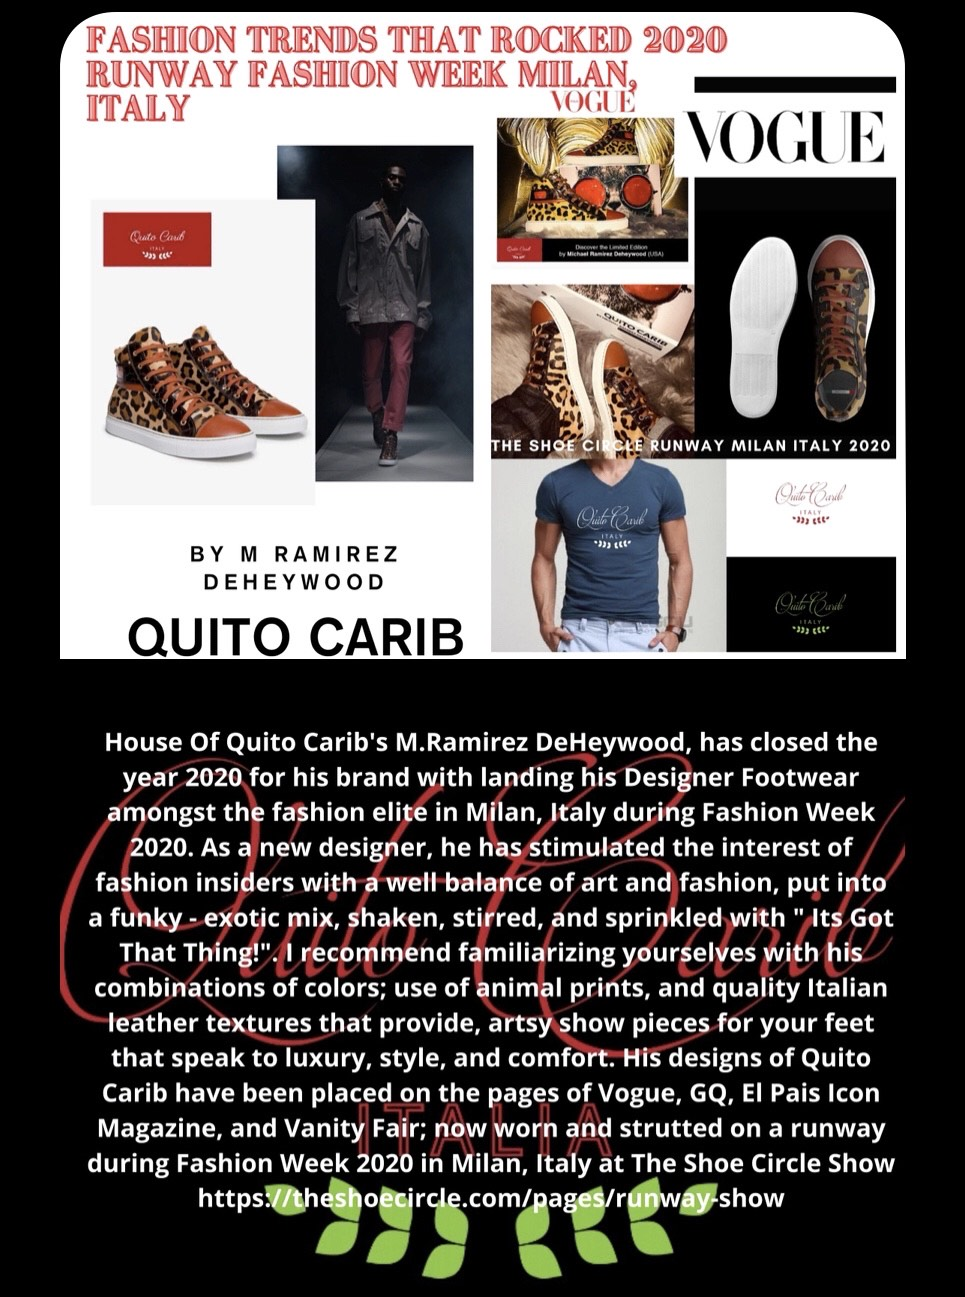 House Of Quito Carib Italian custom crafted shoe featured on Runway at Fashion Week Milan, Italy